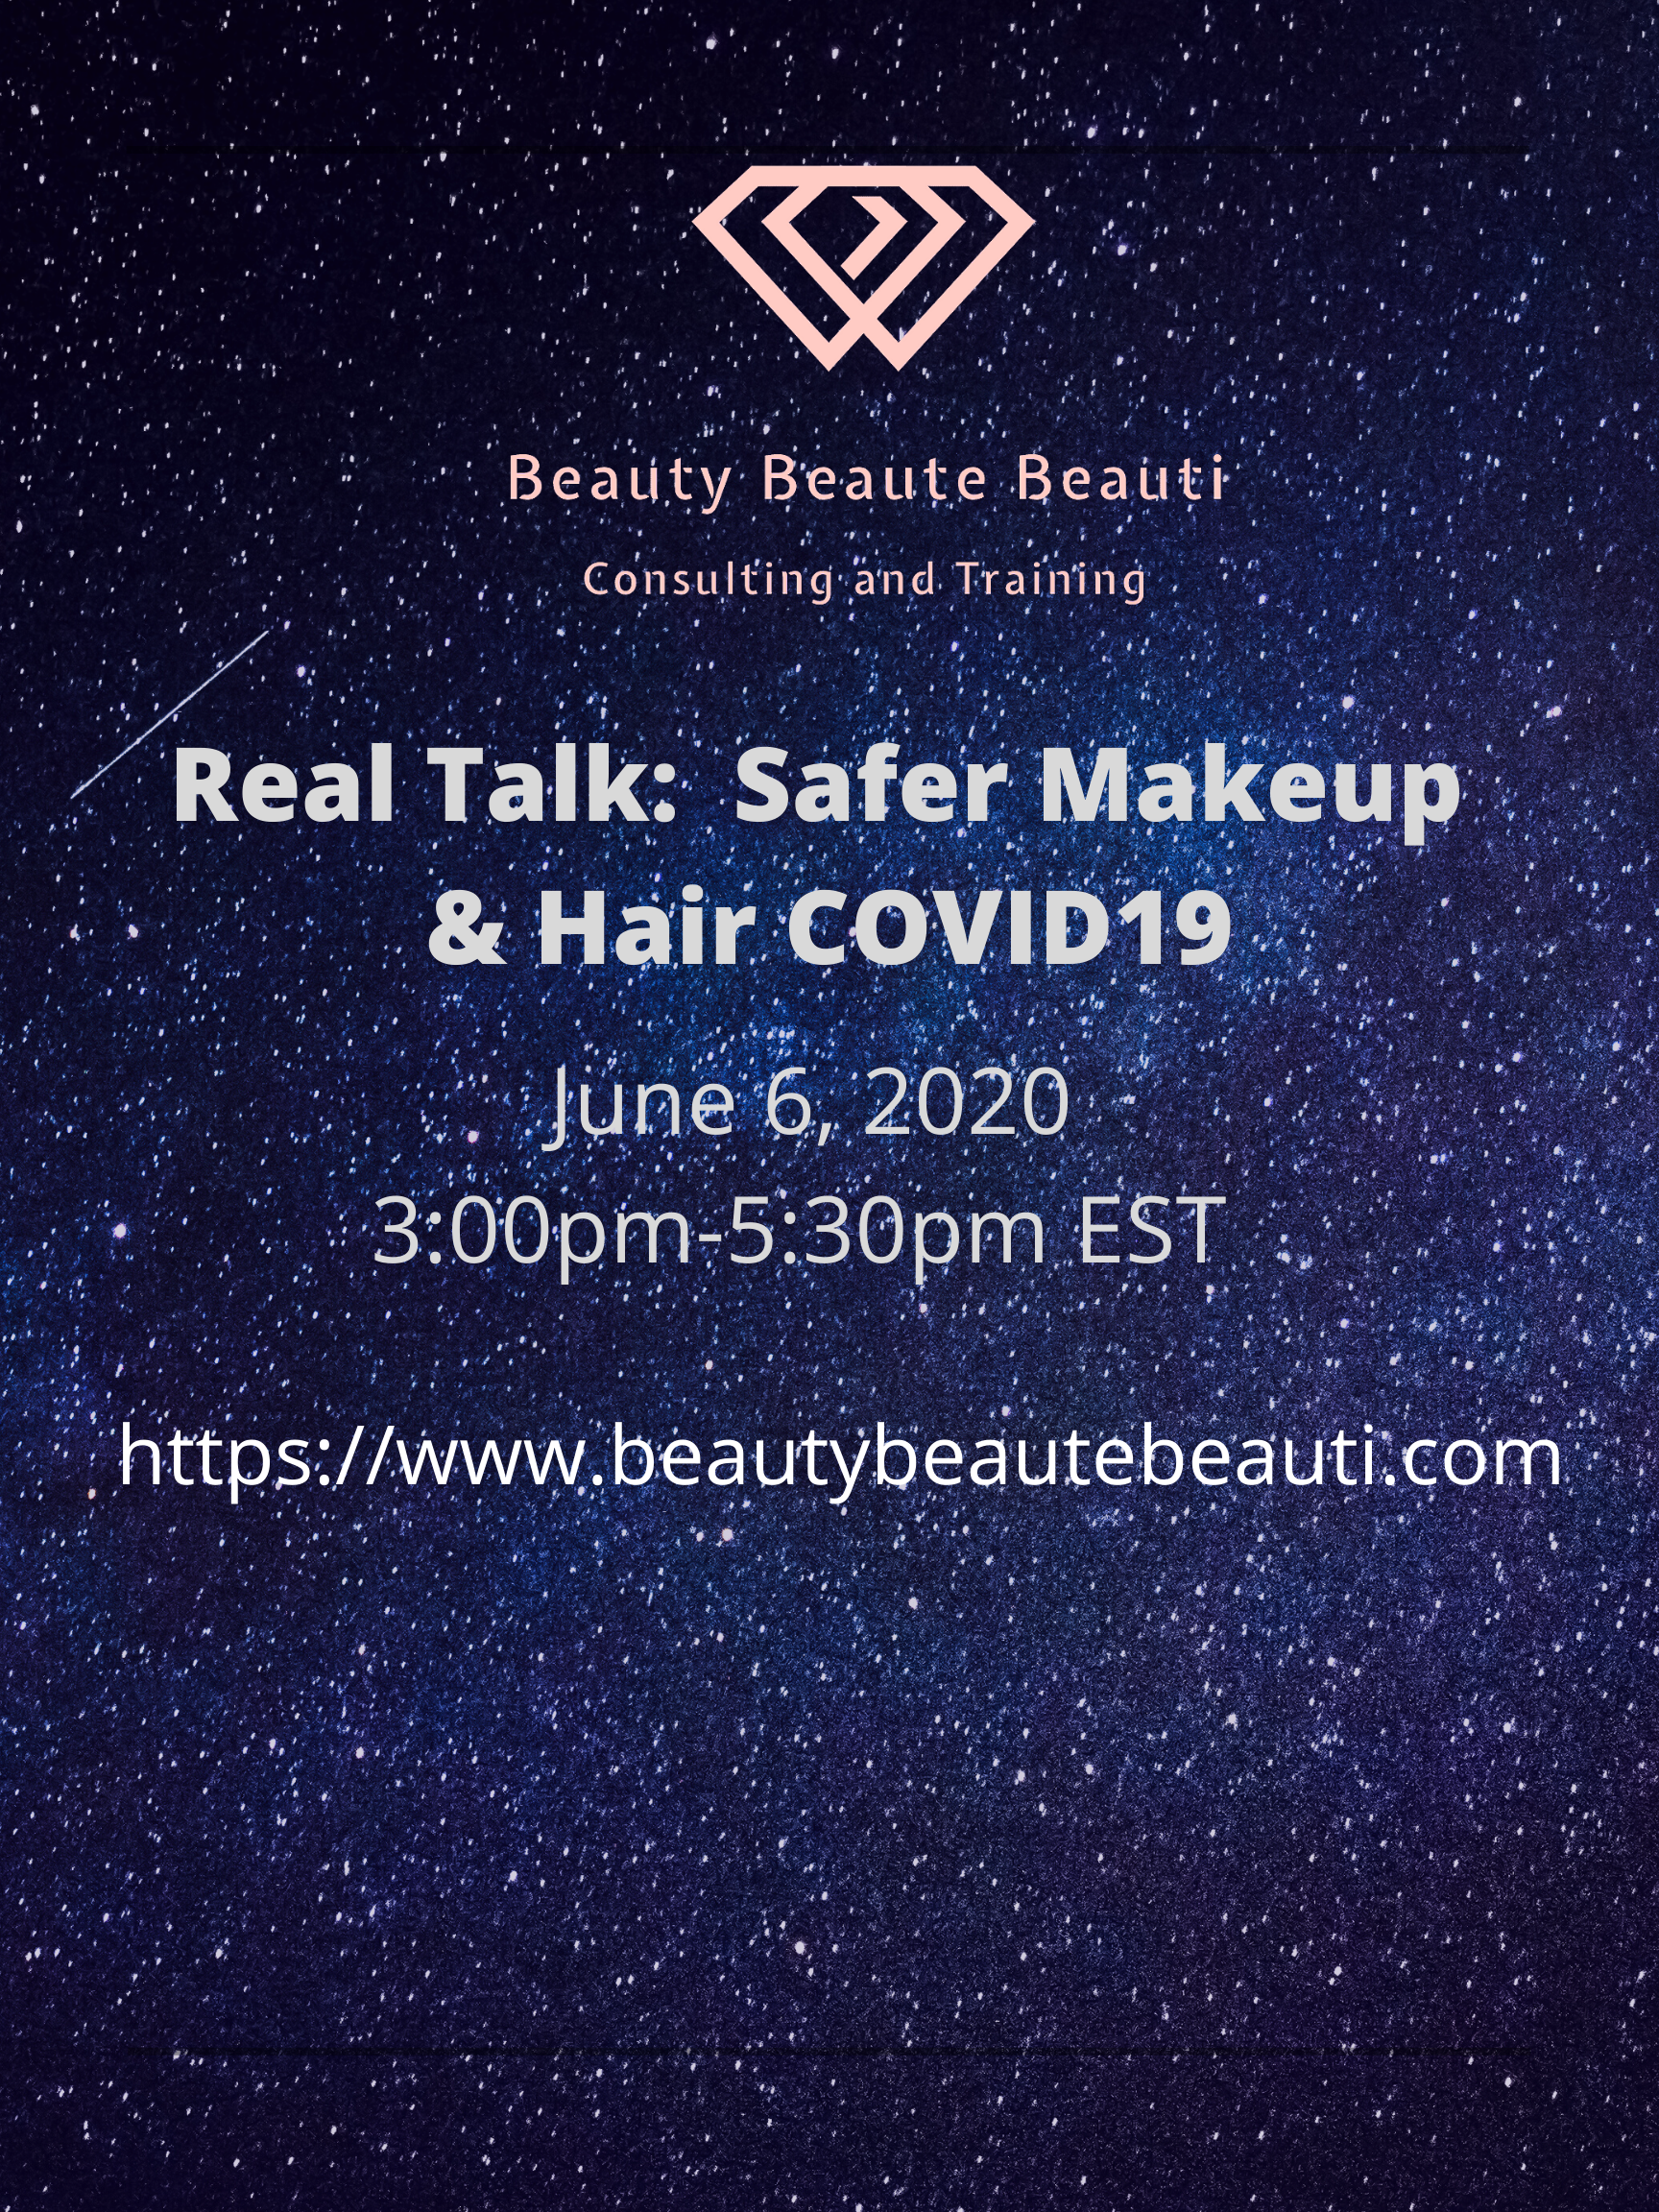 Safer Makeup/Hair COVID19